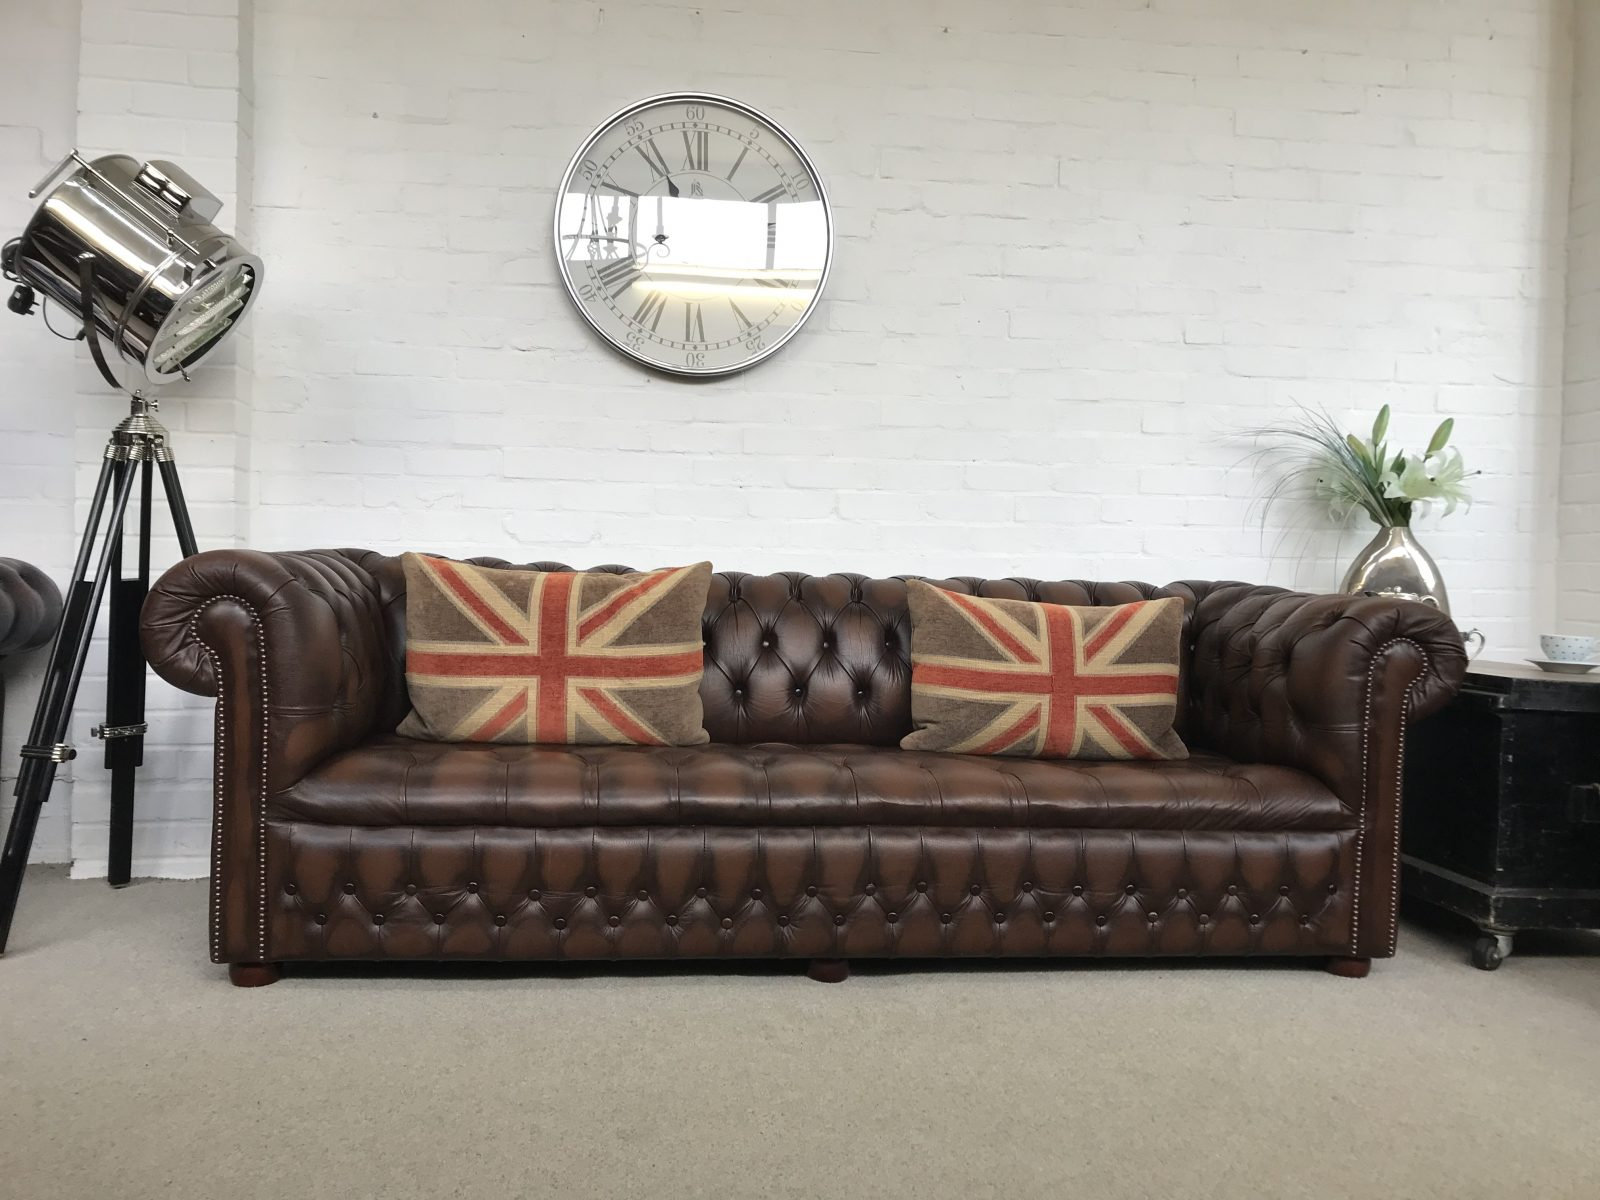 Superb 4 Seater Antique Chestnut Brown Chesterfield Sofa.